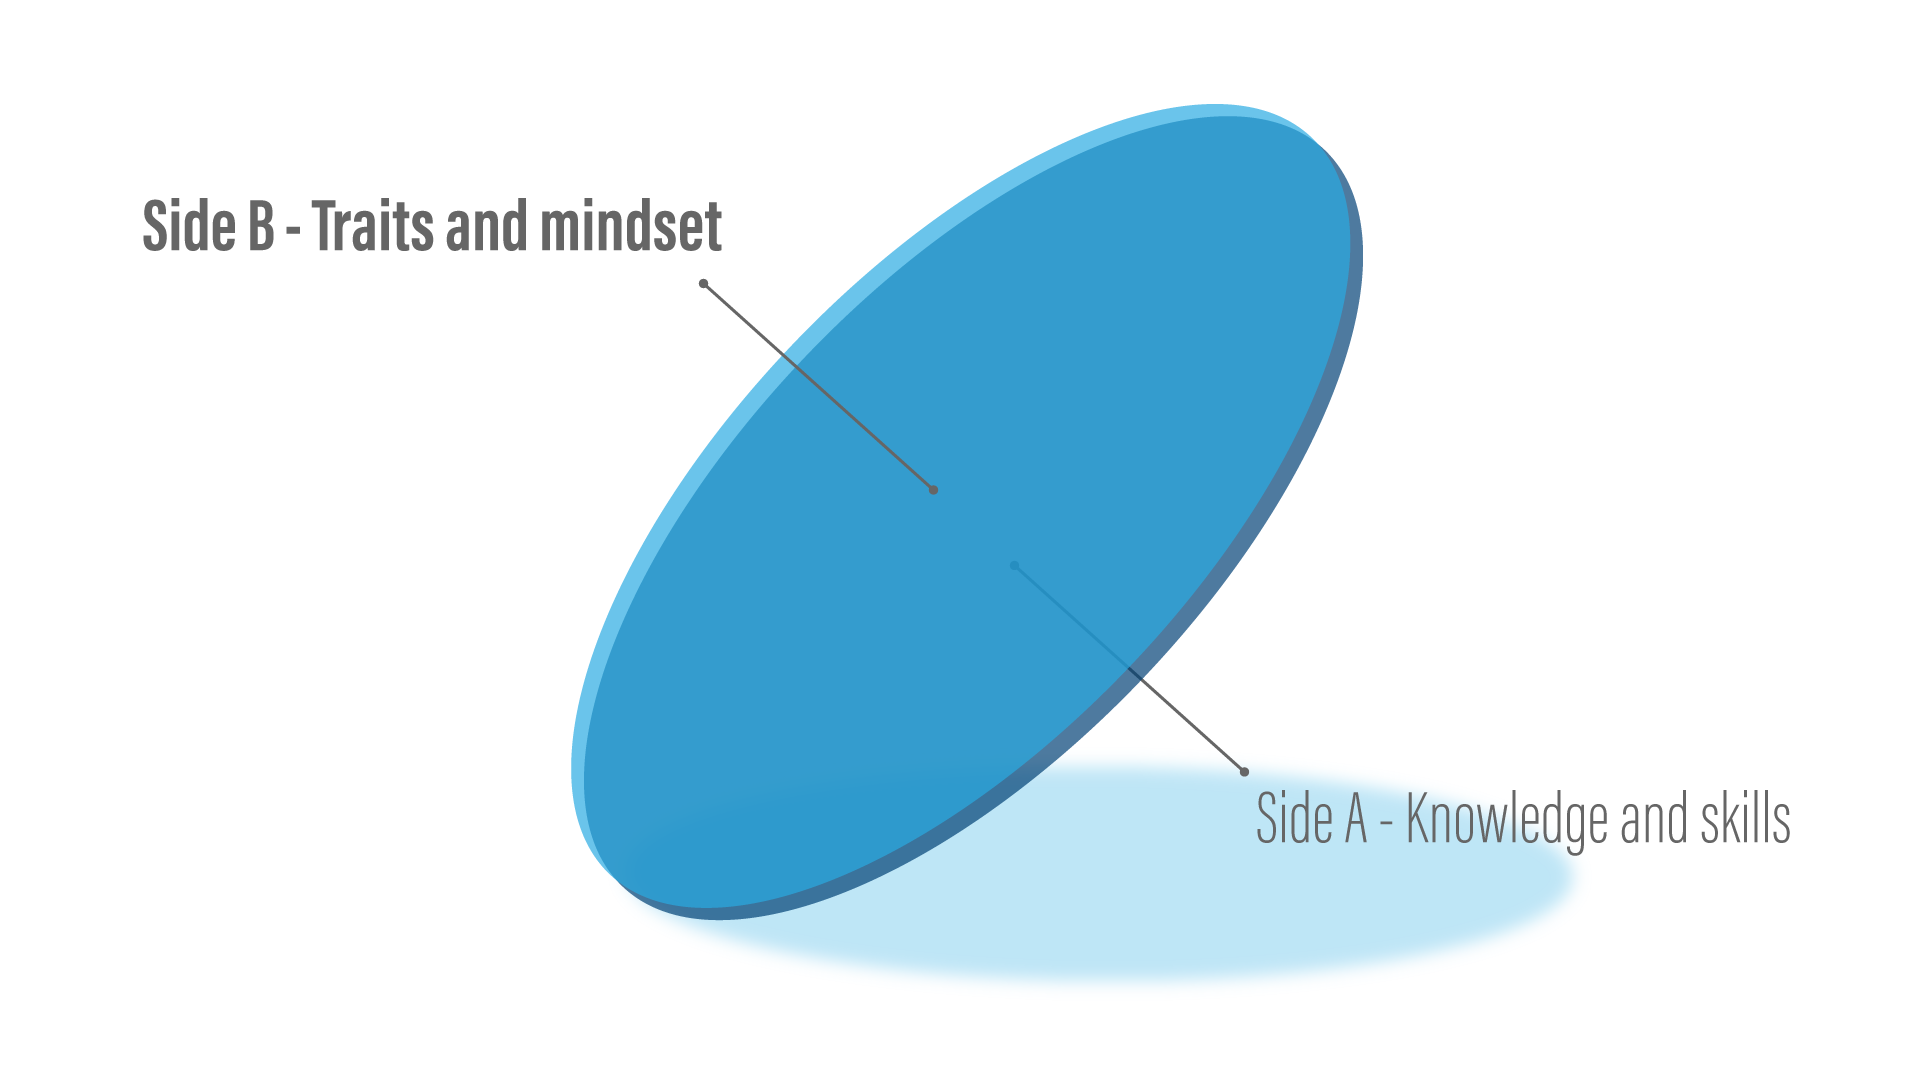 Conceptual diagram showing the side A of the coin is knowledge and skill, while the side B is traits and mindset.